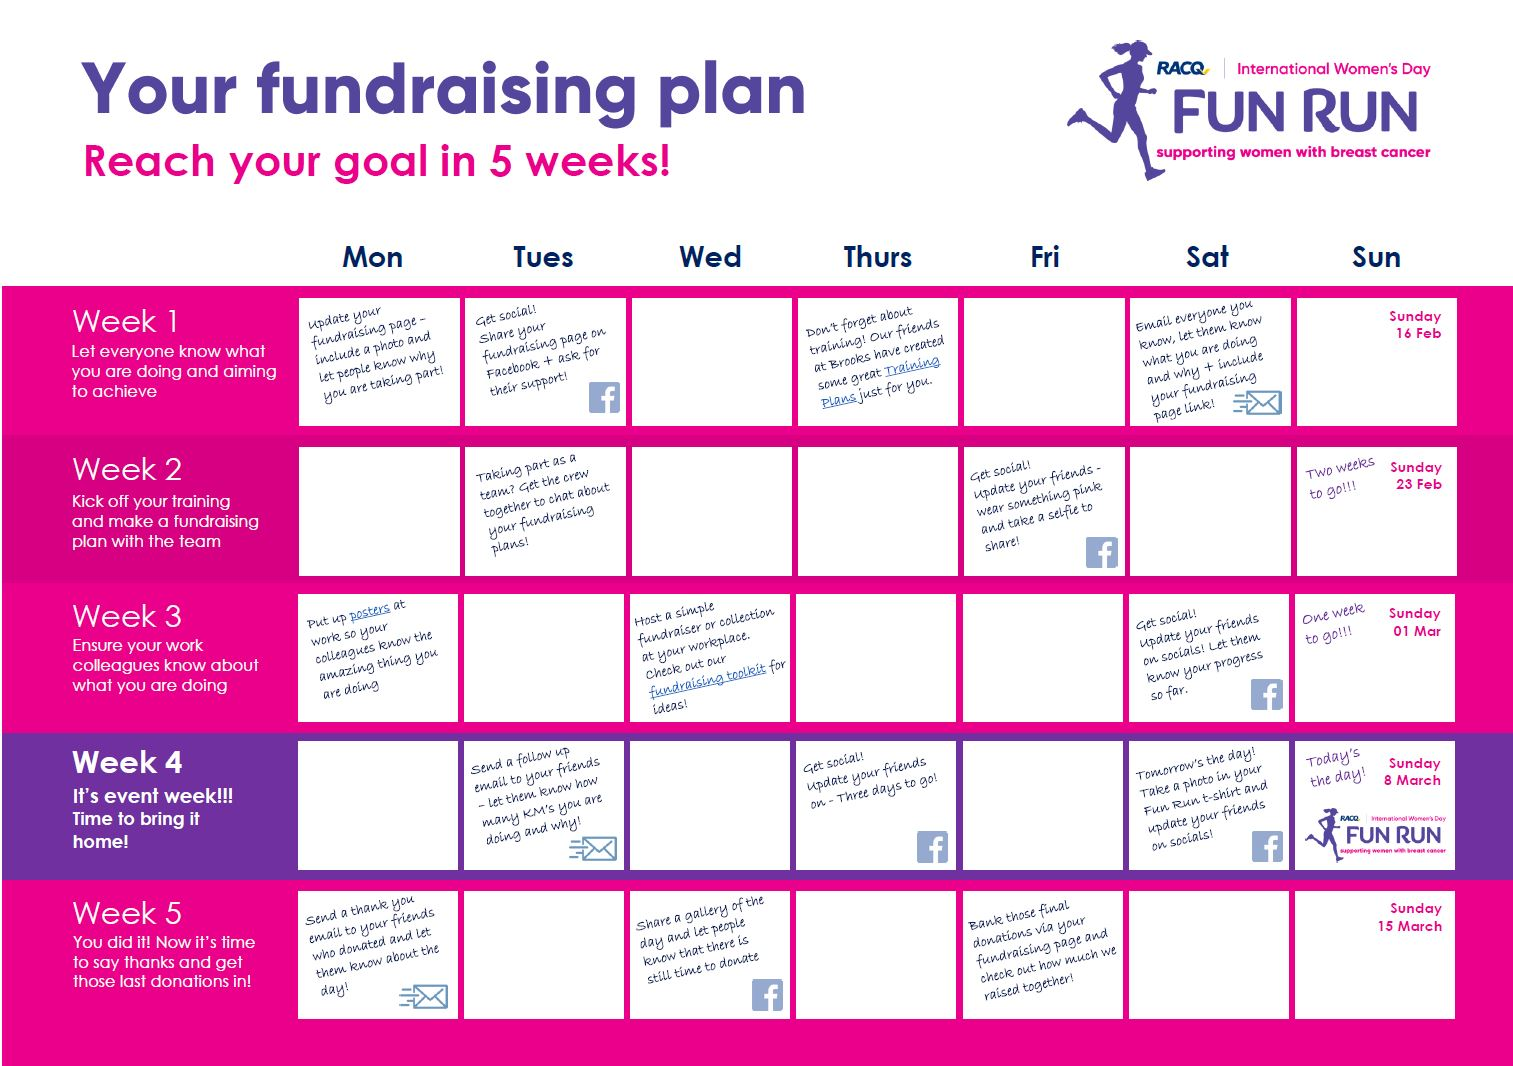 Your 5 week fundraising plan